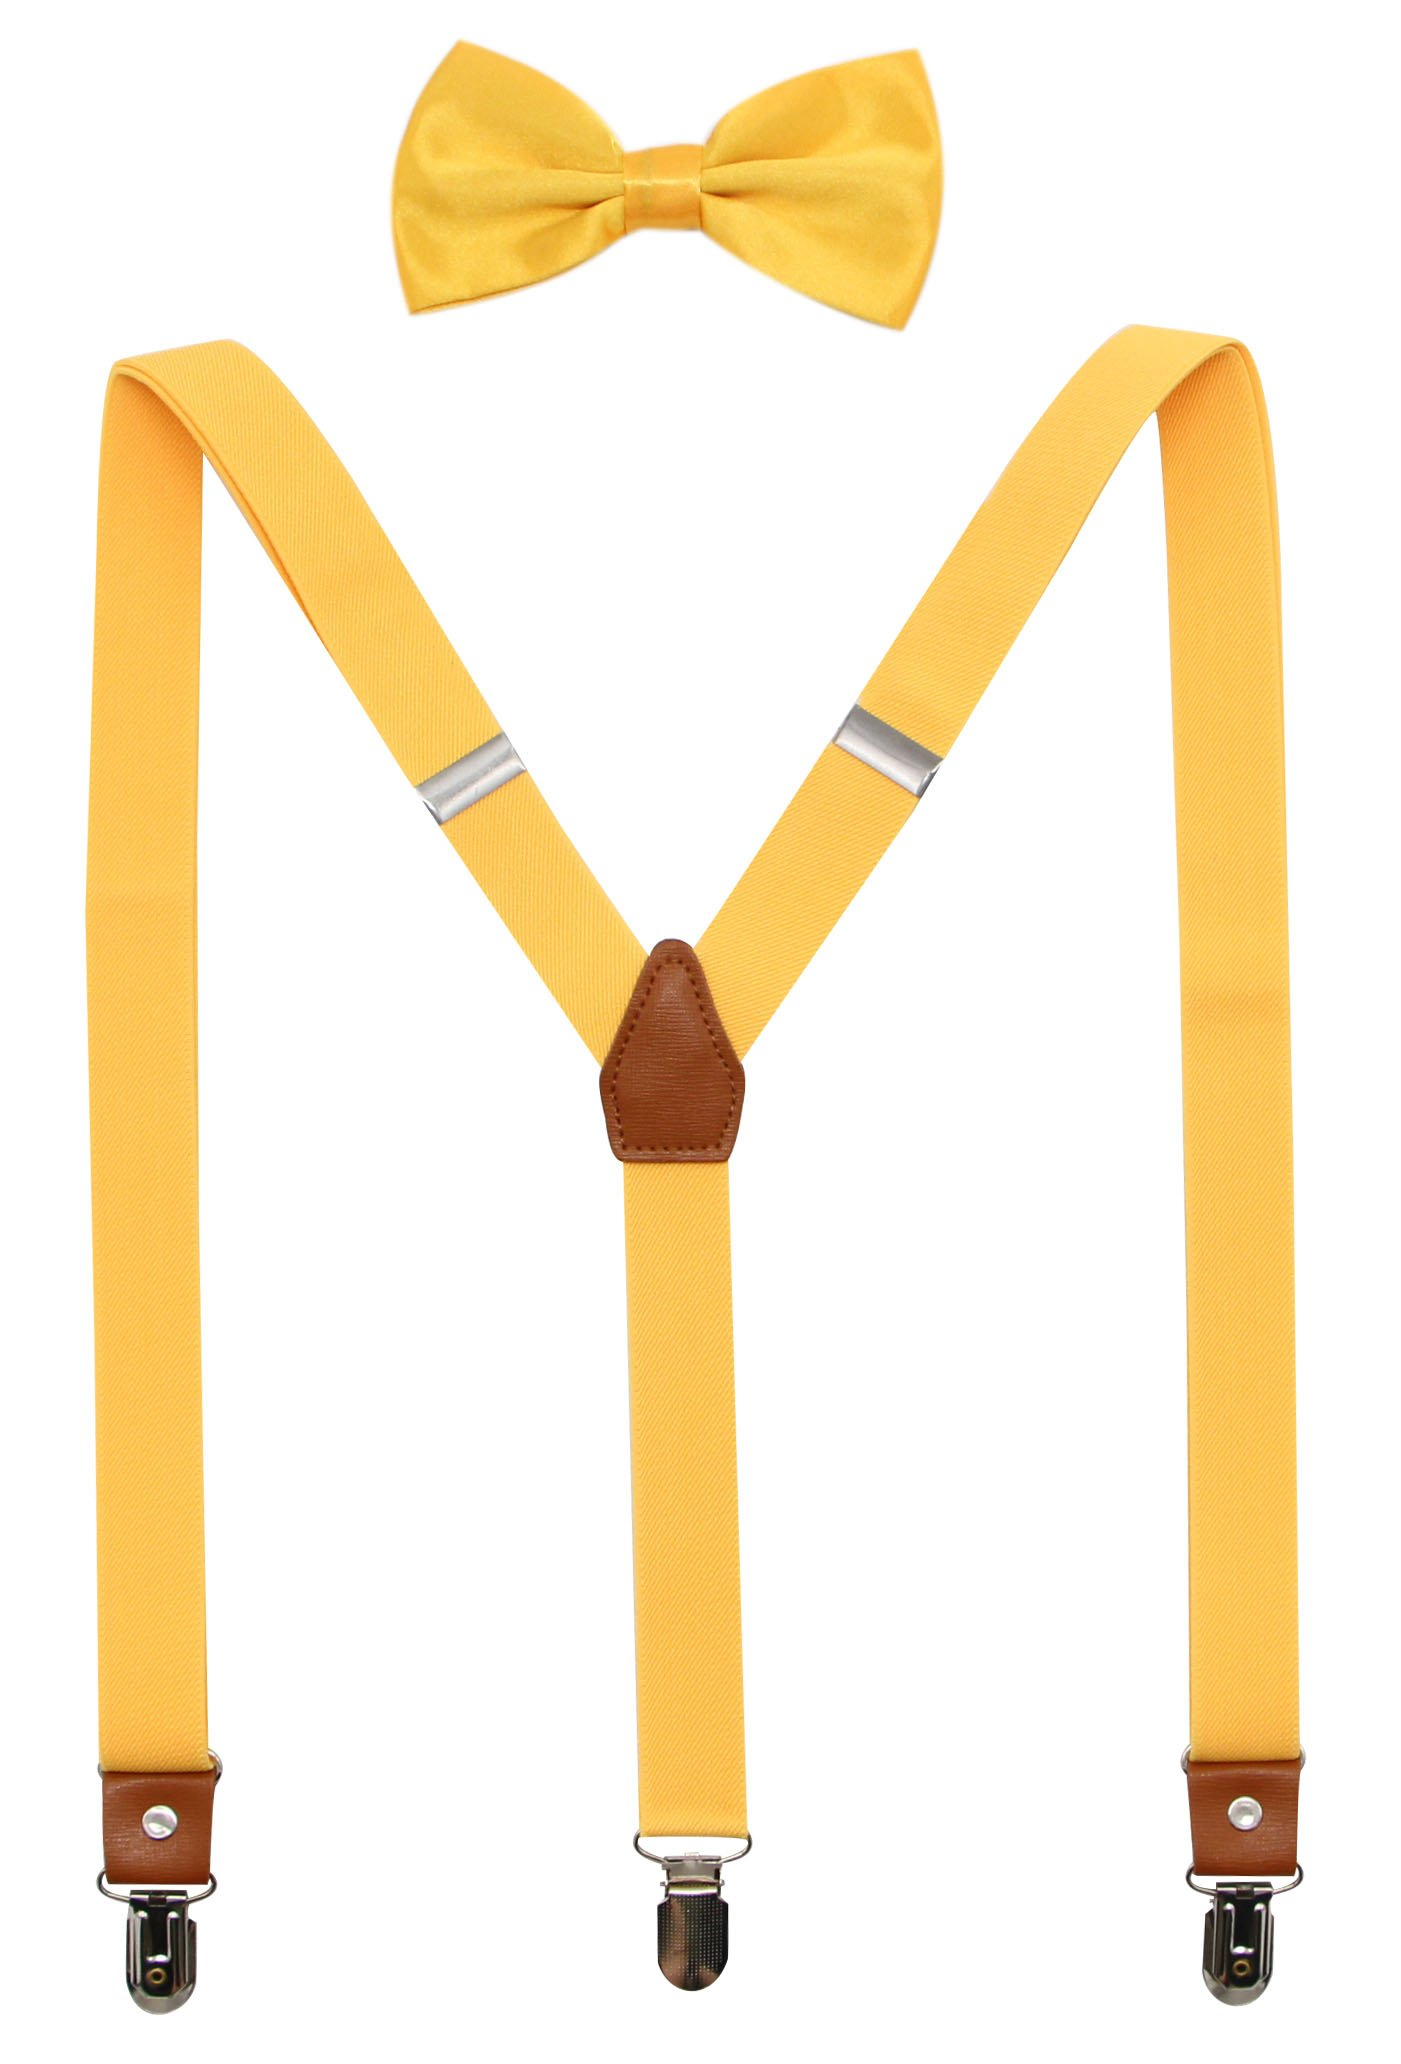 Suspenders And Pre-Tied Bowtie Set For Boys And Men By JAIFEI, Casual And Formal (Men(47 inches), Yellow)